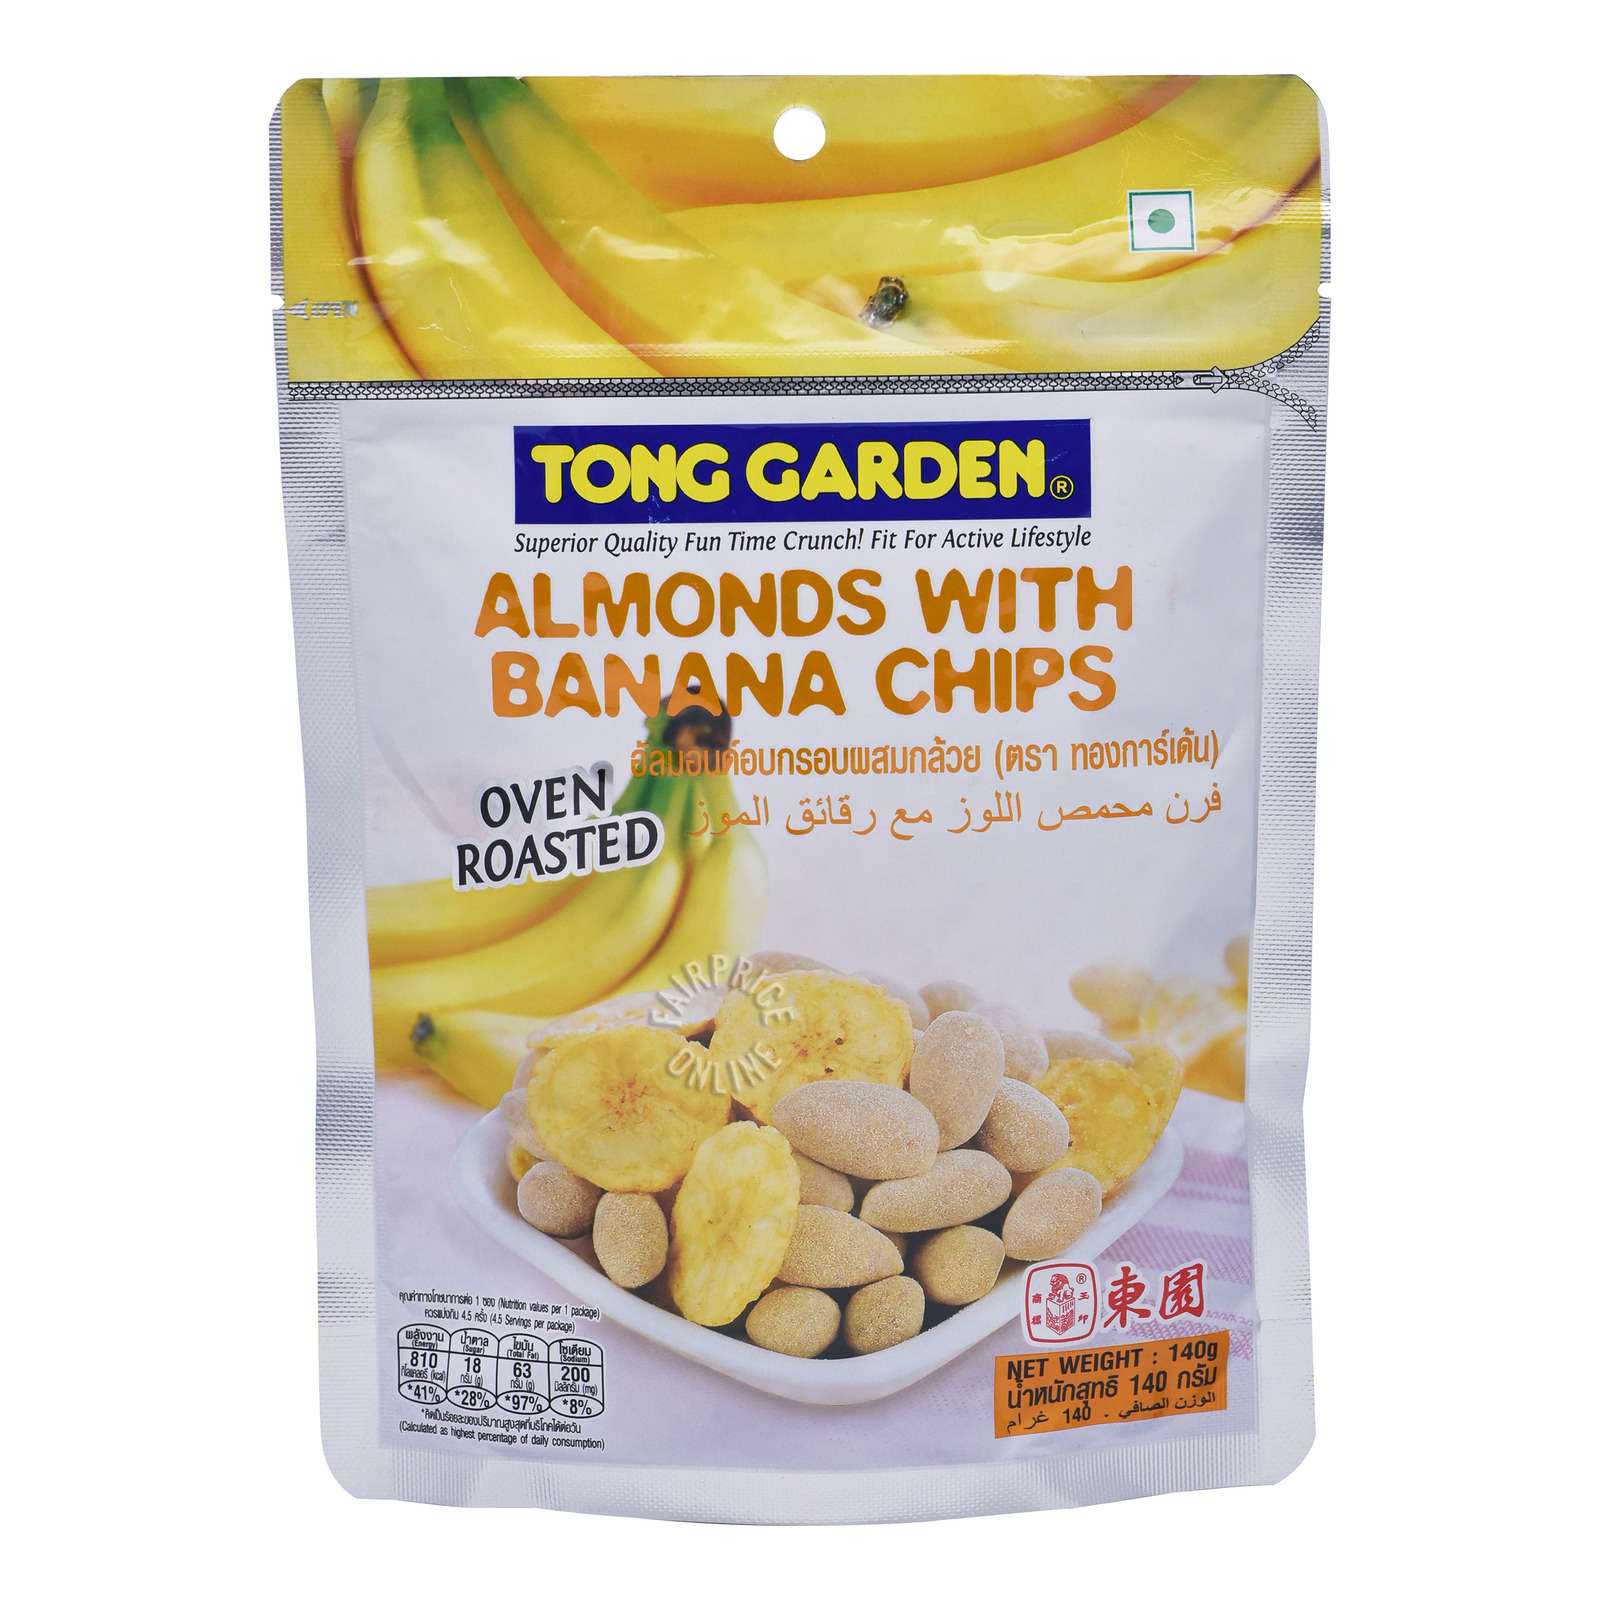 Tong Garden Oven-Roasted Almonds with Banana Chips